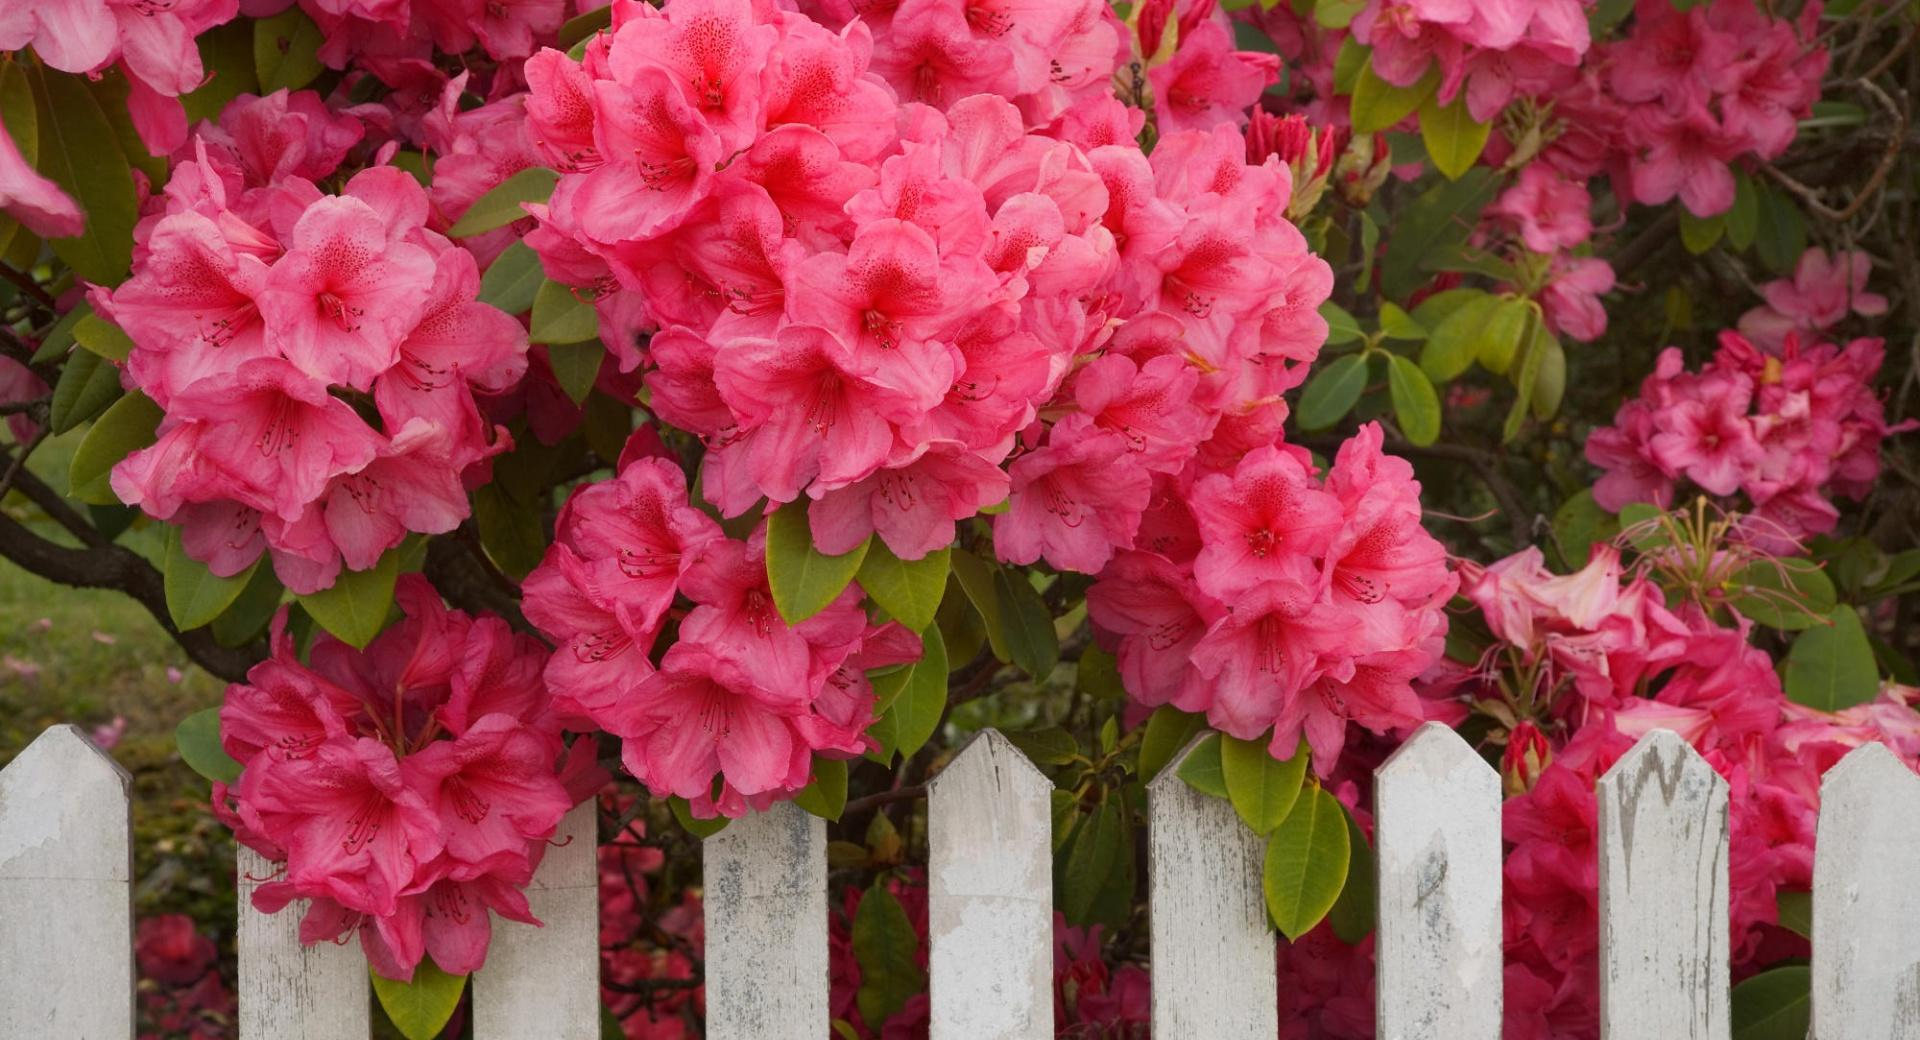 Rhododendron And Fence Reedsport Oregon wallpapers HD quality